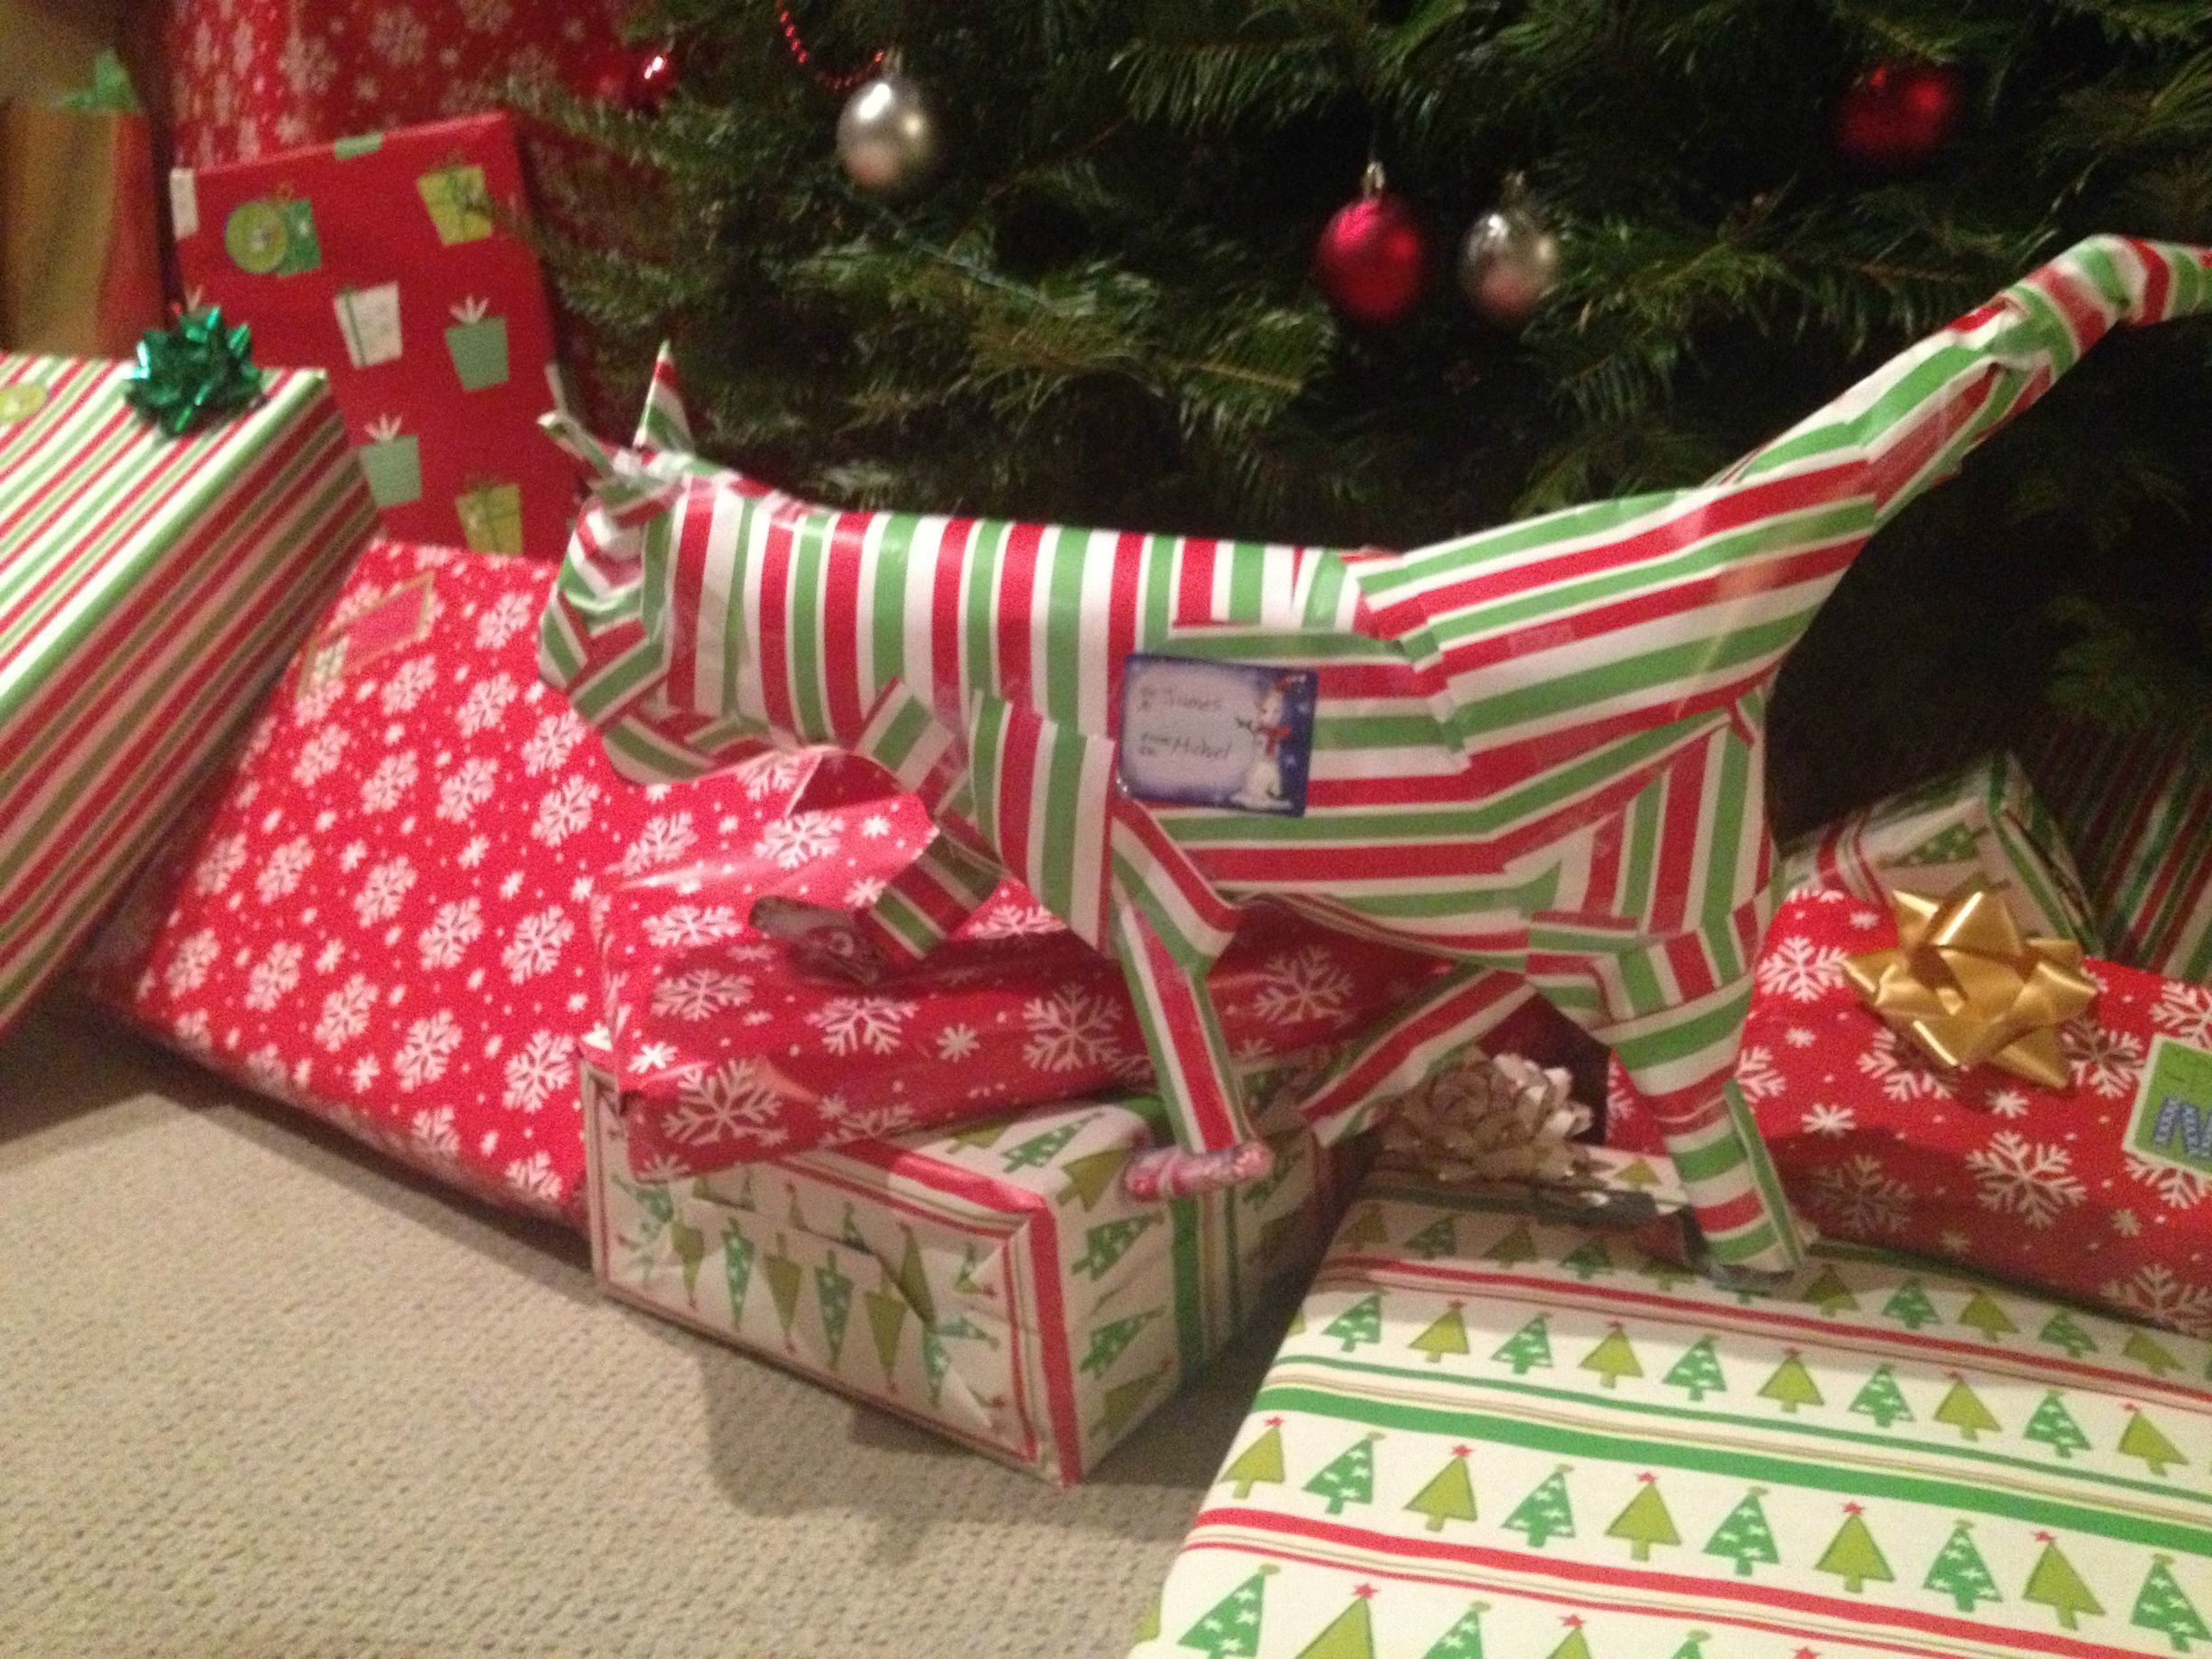 20 trolls who took gift wrapping to ridiculous extremes